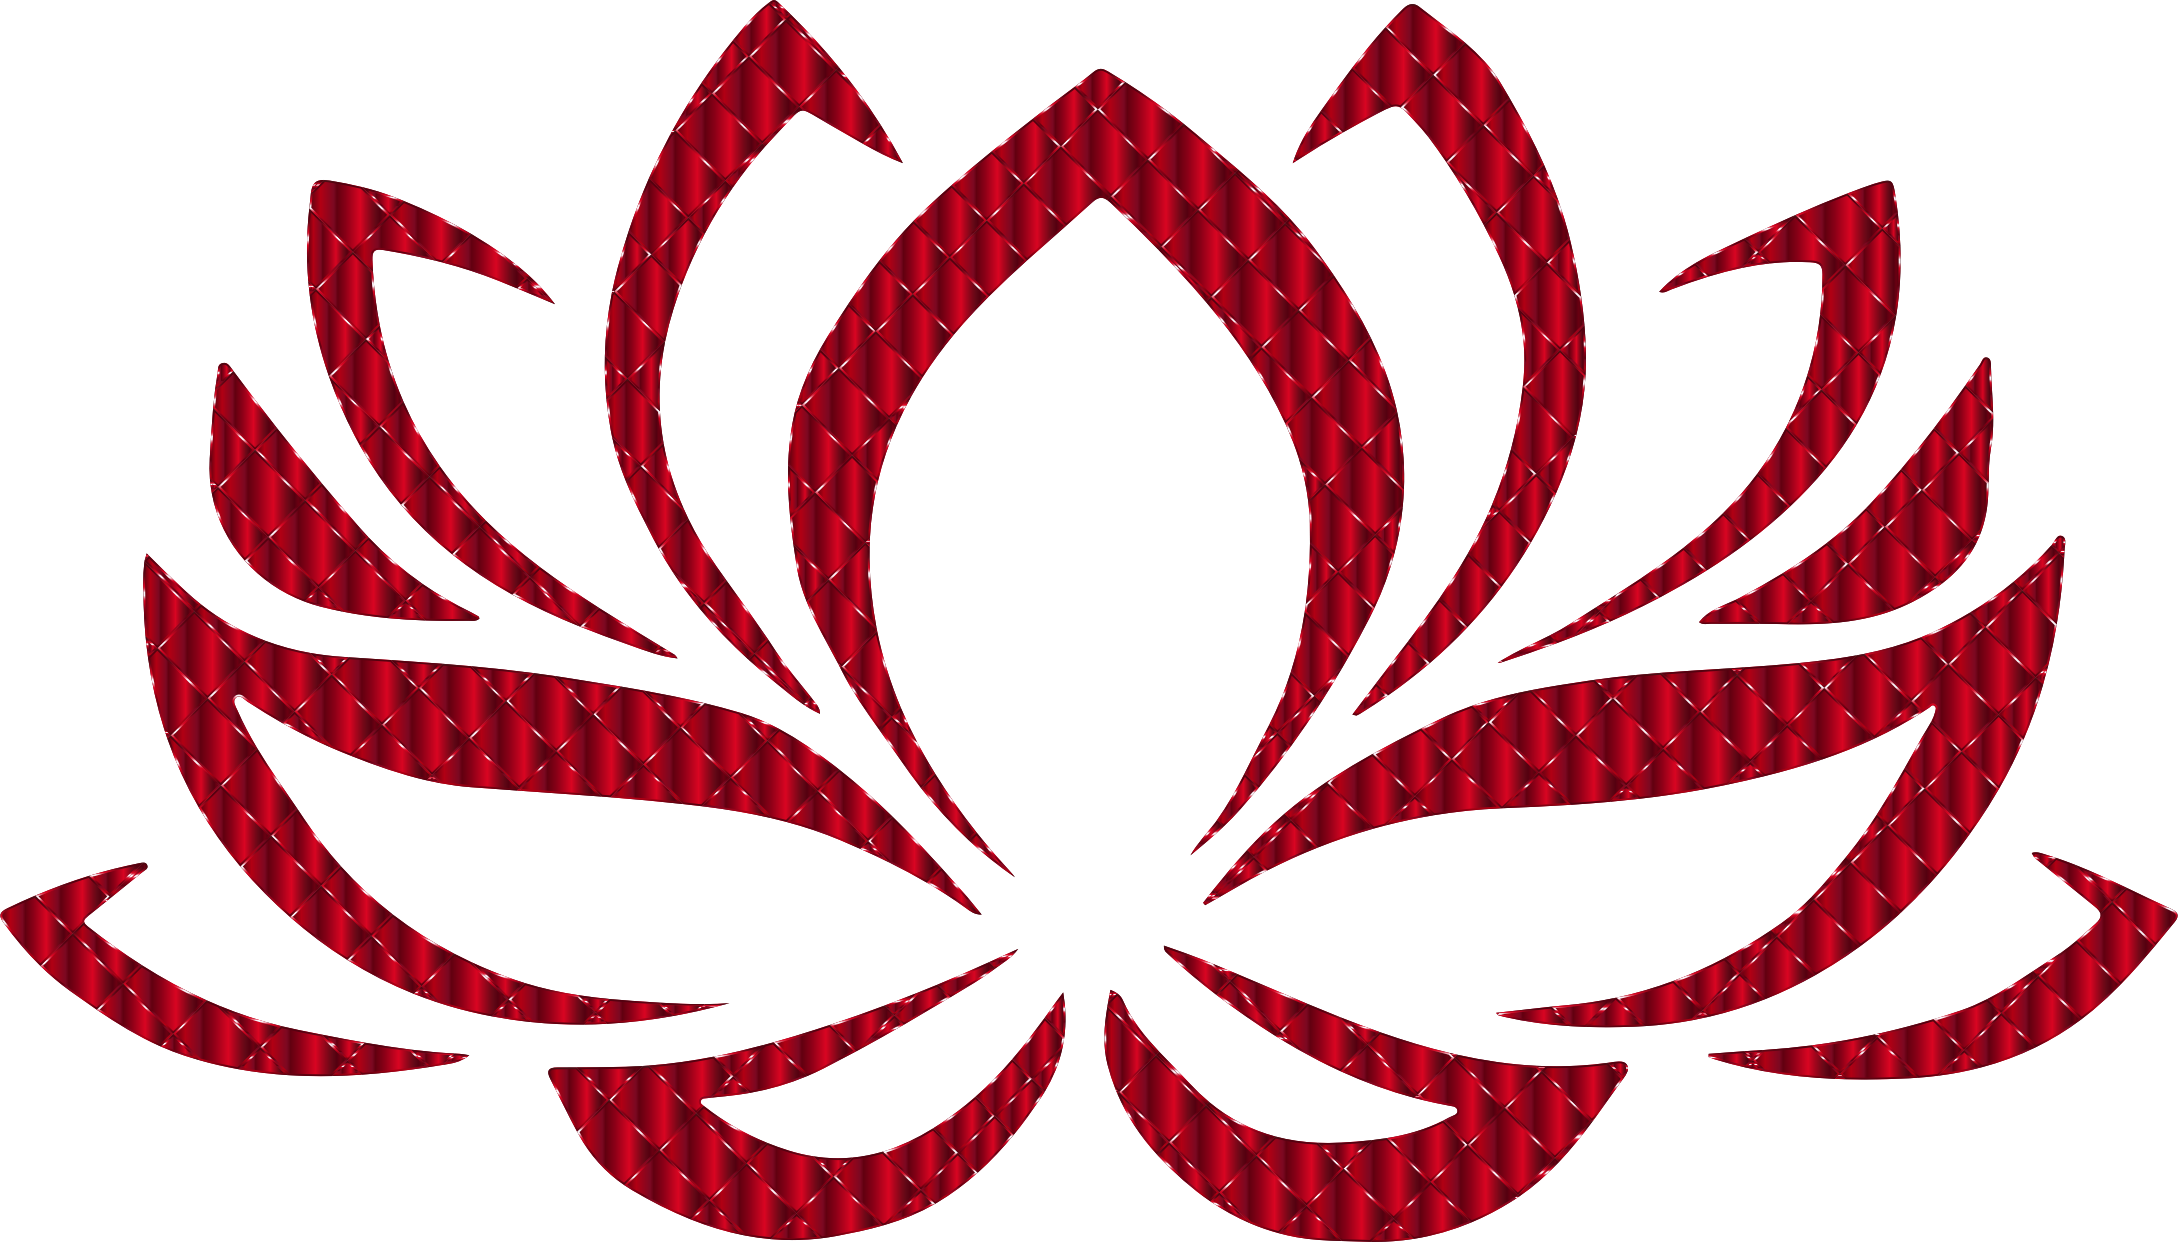 Lotus flower clipart free picture black and white library Vermillion Lotus Flower No Background Icons PNG - Free PNG and Icons ... picture black and white library